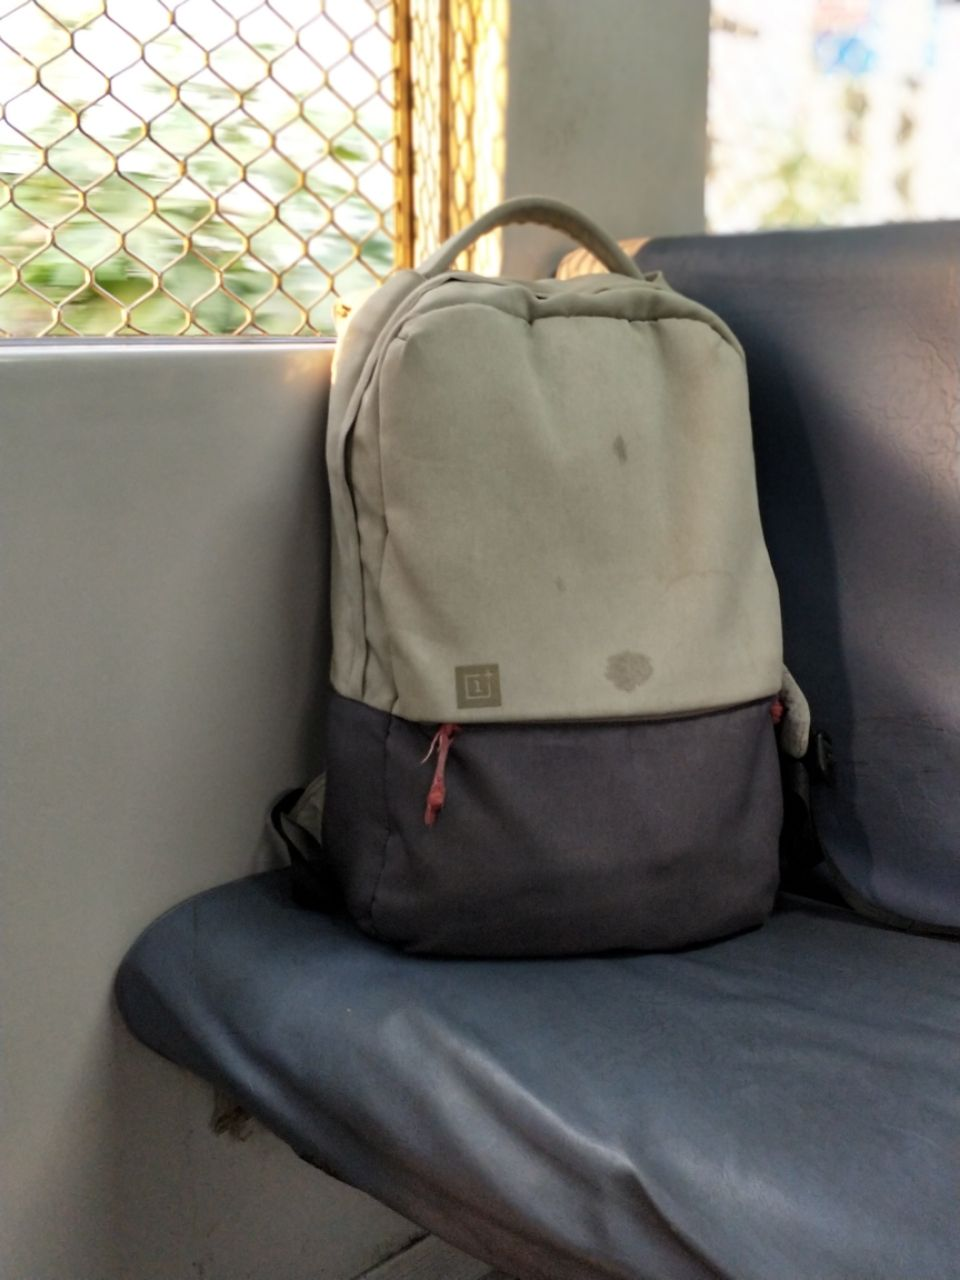 Train and Bag.jpg